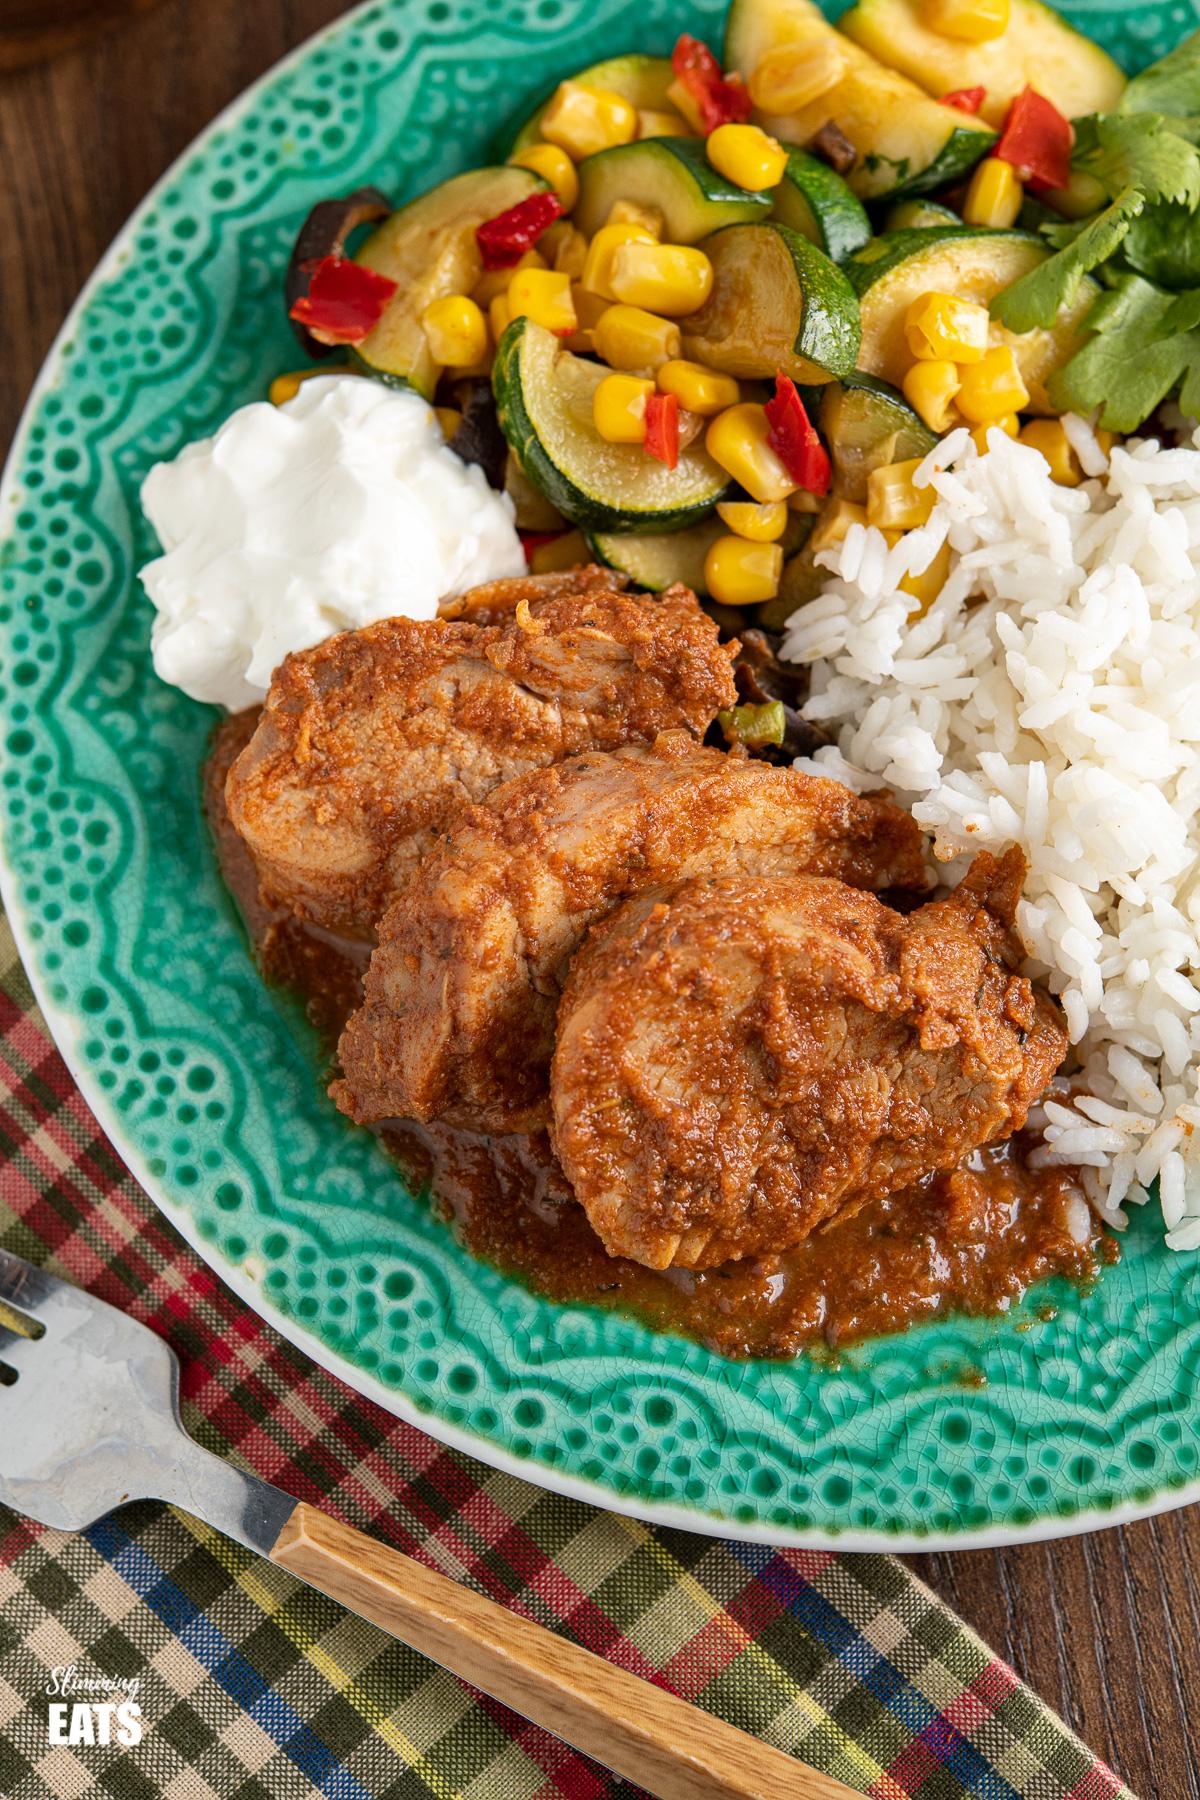 close up of sliced Slow Cooker Cajun Apple Pork Tenderloin on teal plate with sour cream, rice and vegetables